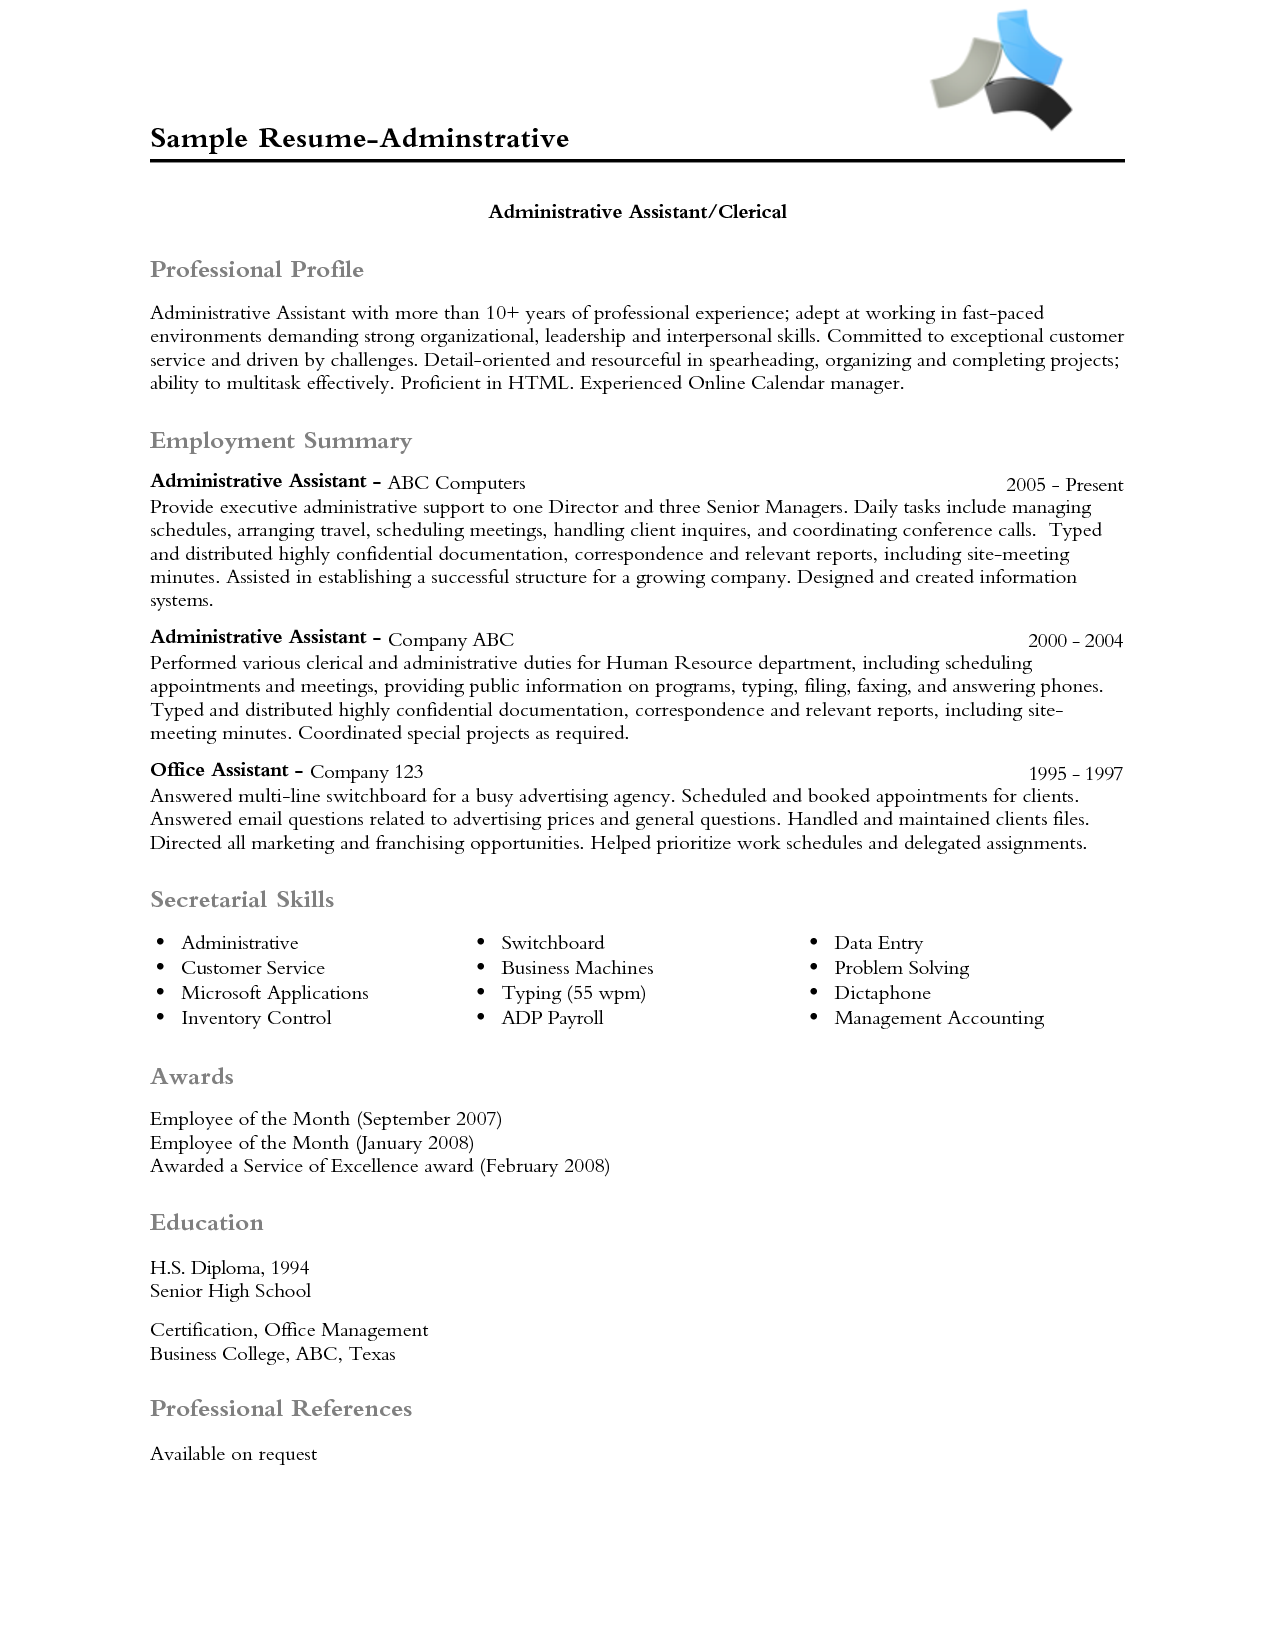 Stockroom Manager Resume Samples - http://www.resumecareer.info ...